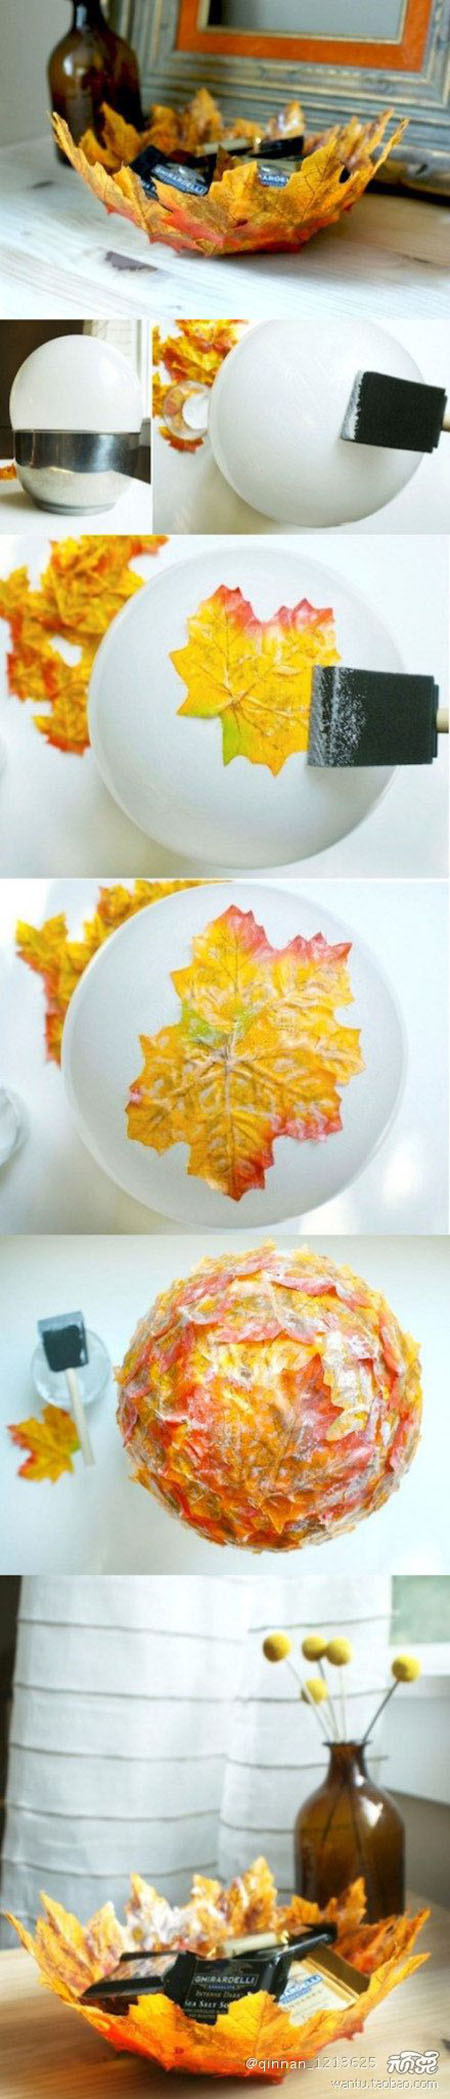 17 A lovely bowl made using colourful autumn leaves1d581548